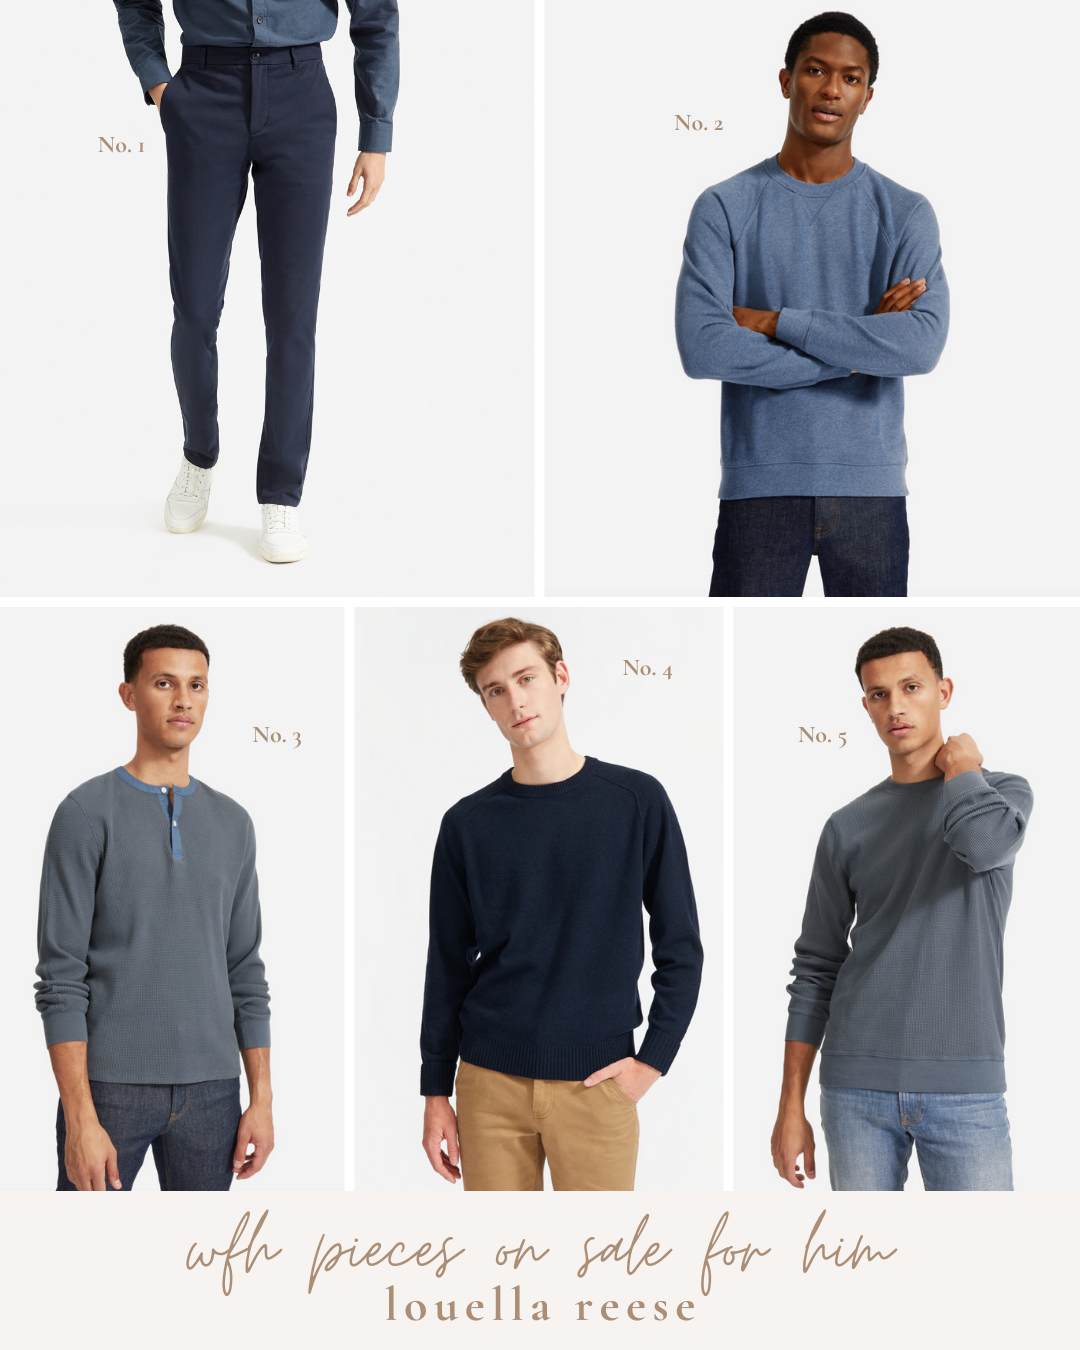 WFH Style for Him   Work From Home clothing on Sale   Louella Reese